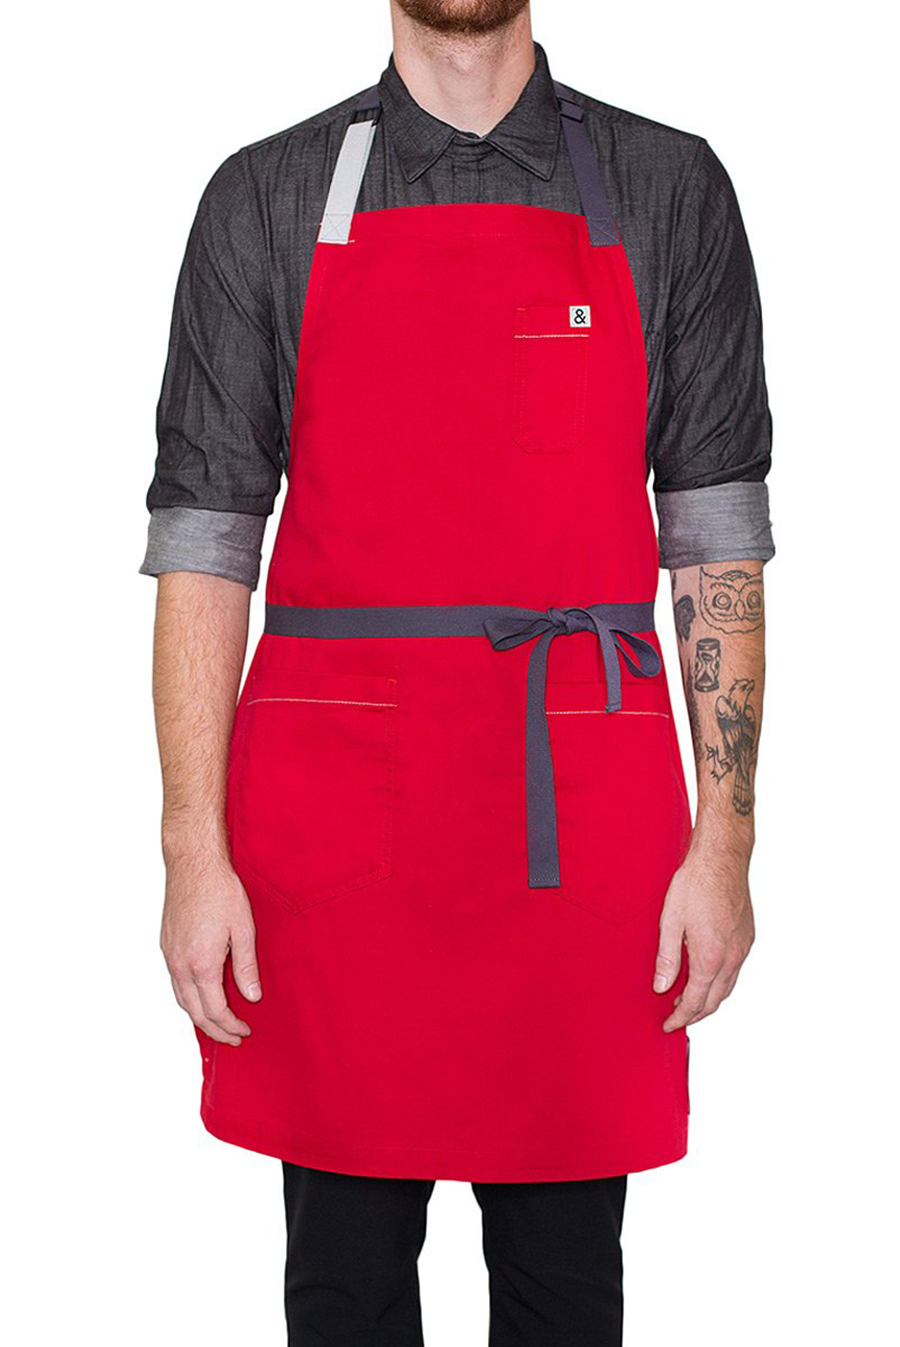 Hedley & Bennet (RED) Chef's Apron